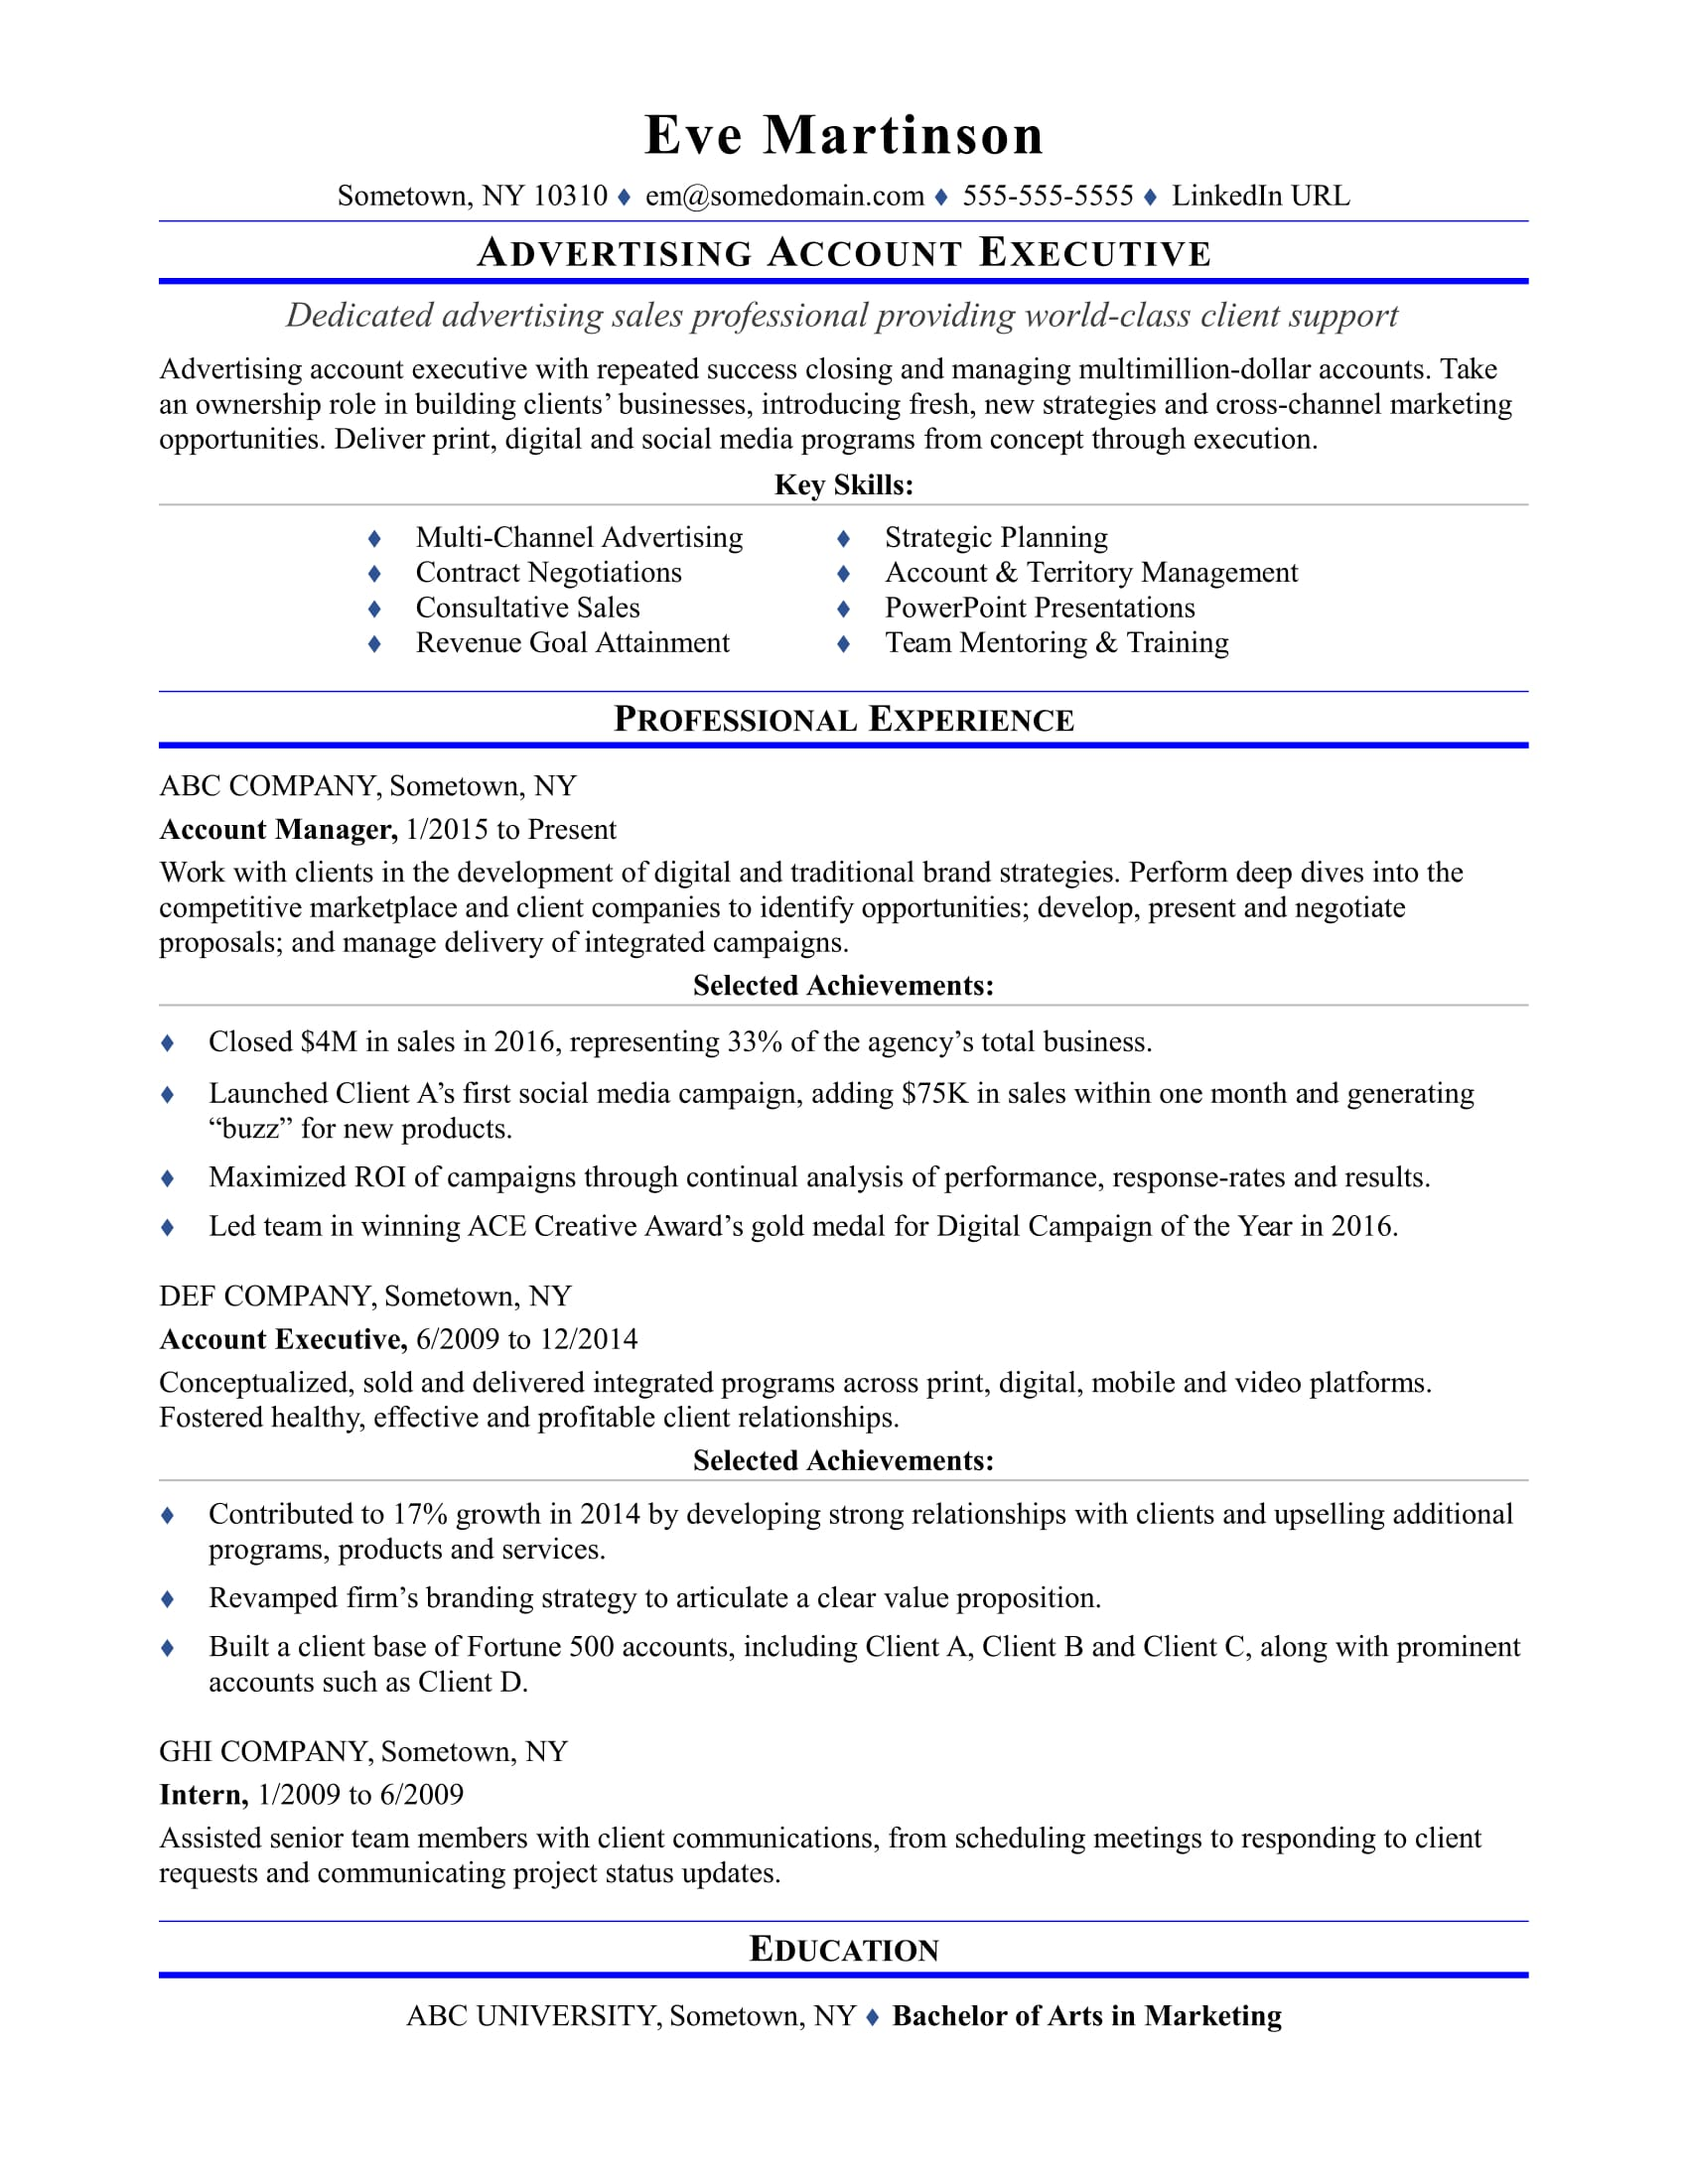 sample resume for an advertising account executive monster examples best format job Resume Account Executive Resume Examples